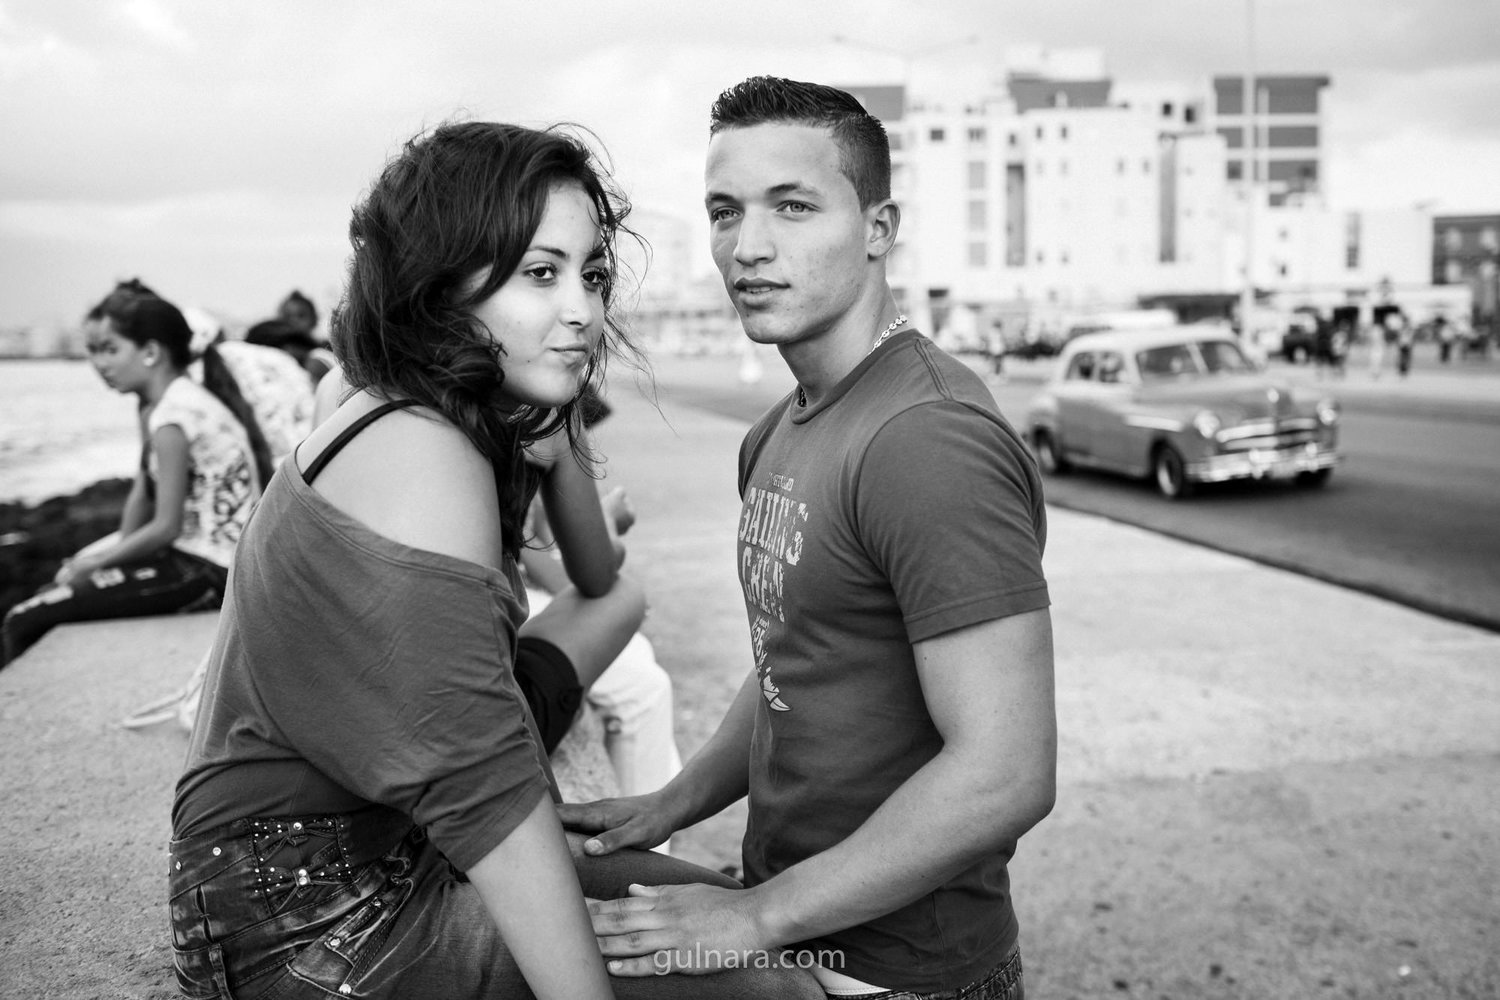 award winning photographer Gulnara  - cuba street photography